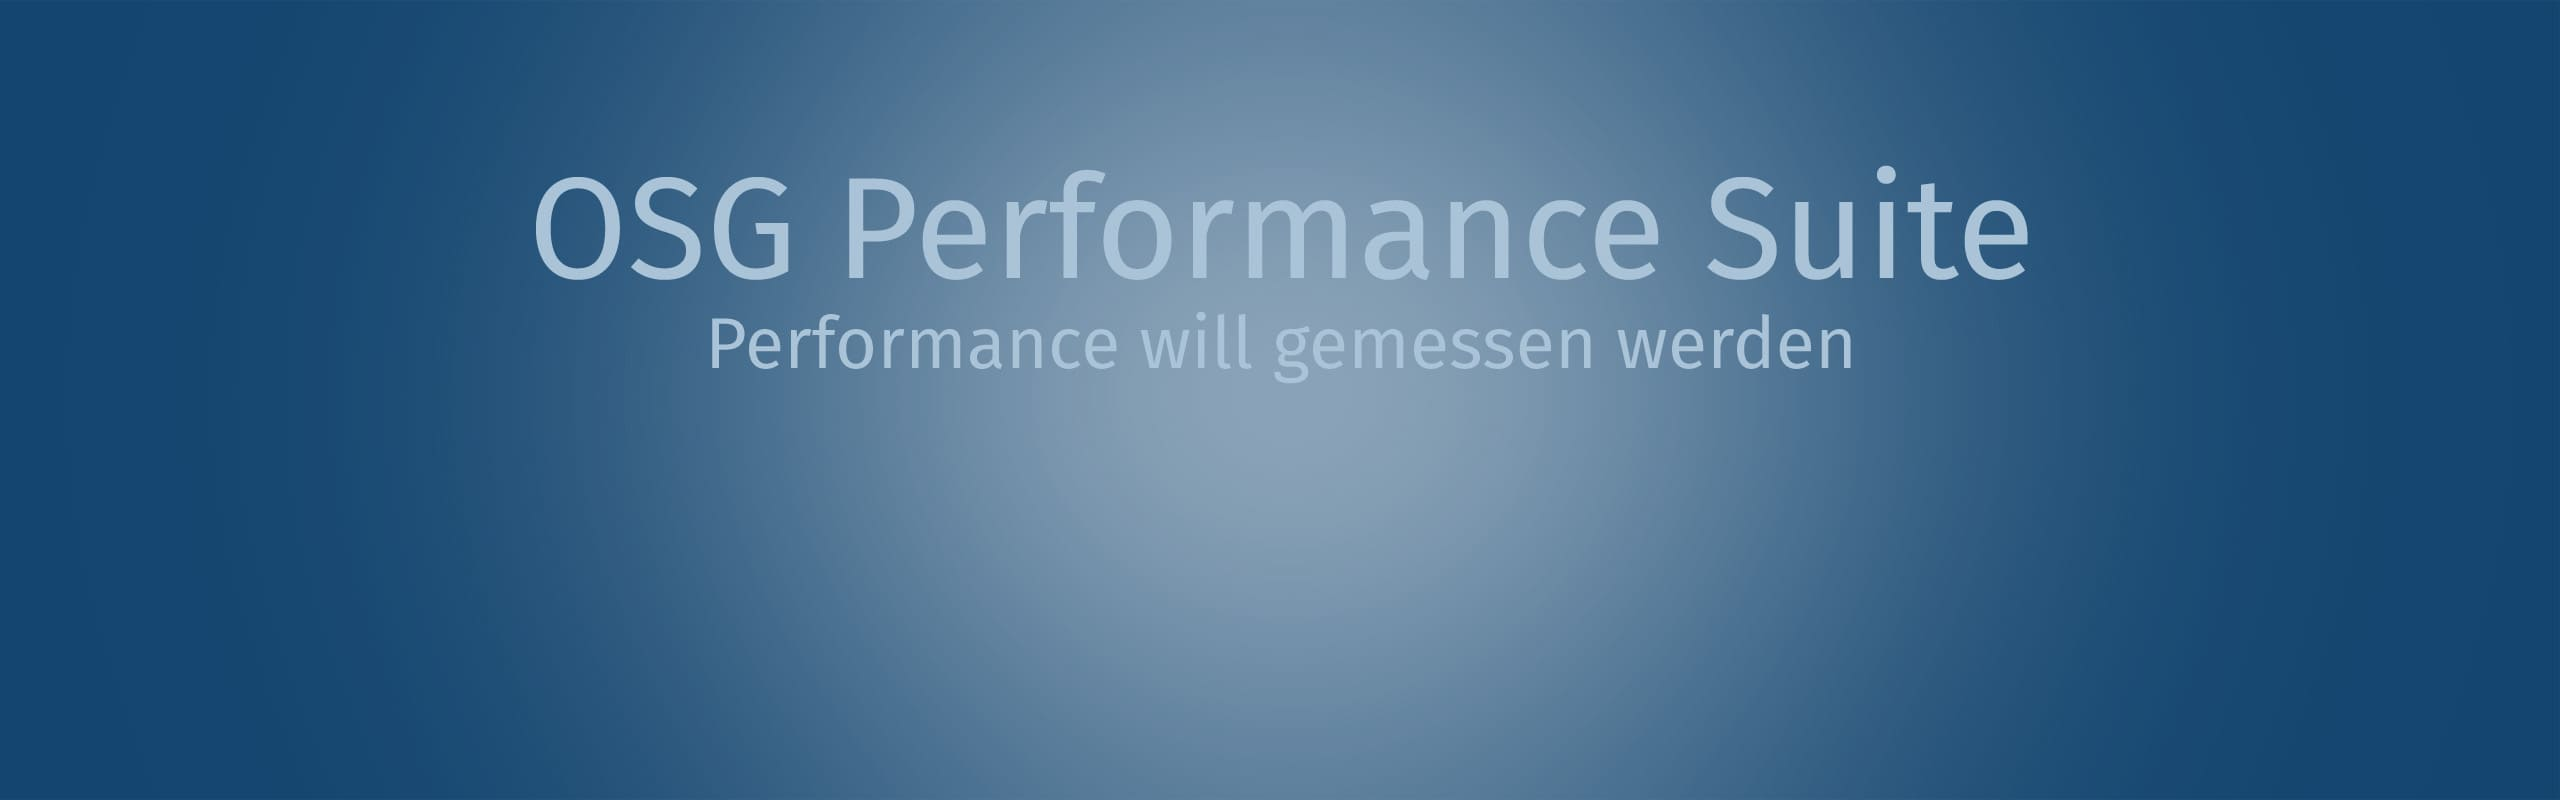 OSG Performance Suite Video Image